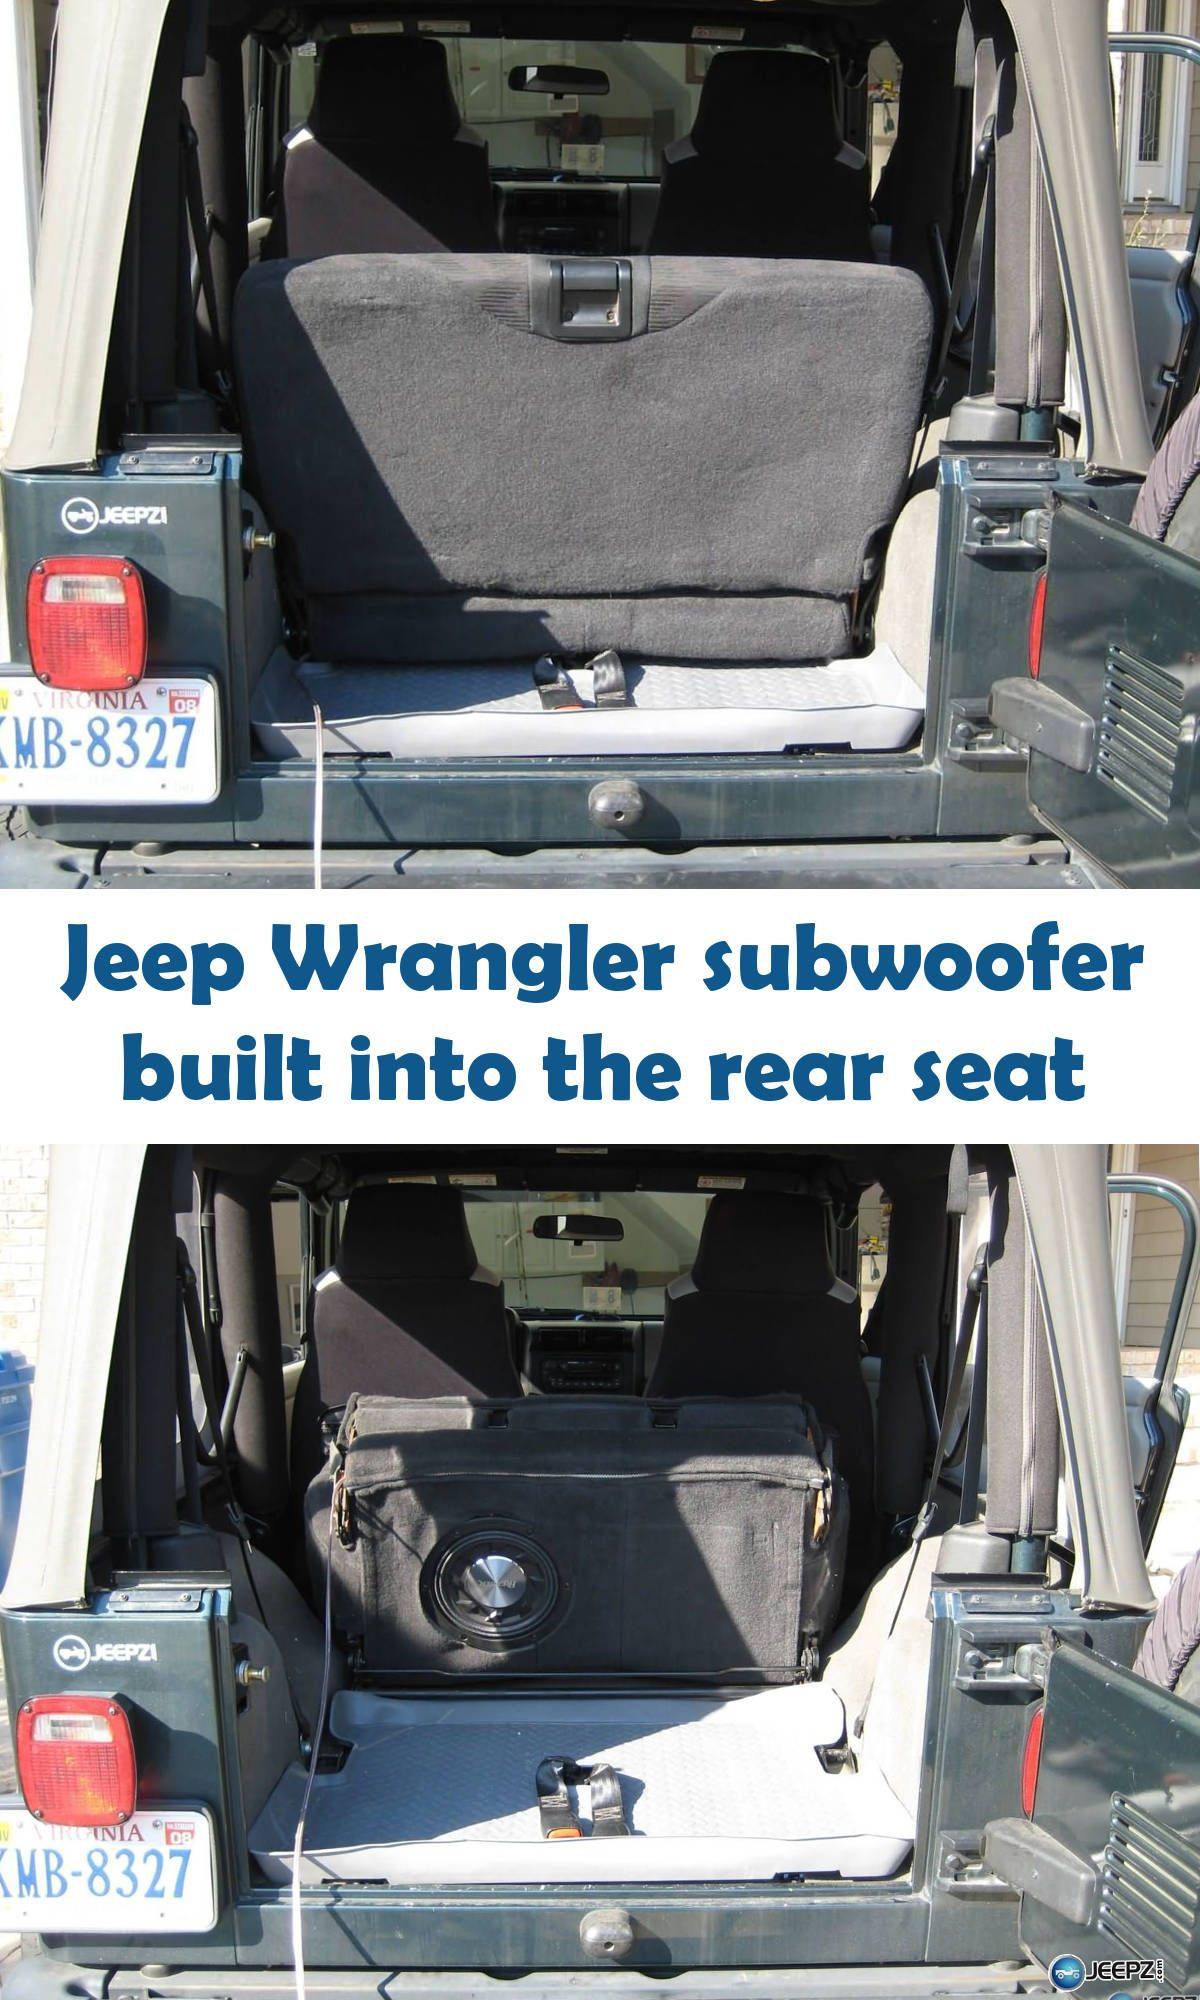 2976282710f Build a subwoofer enclosure into the backseat of your Jeep Wrangler with  this how-to article. You'll get tons of bass without giving up any space.